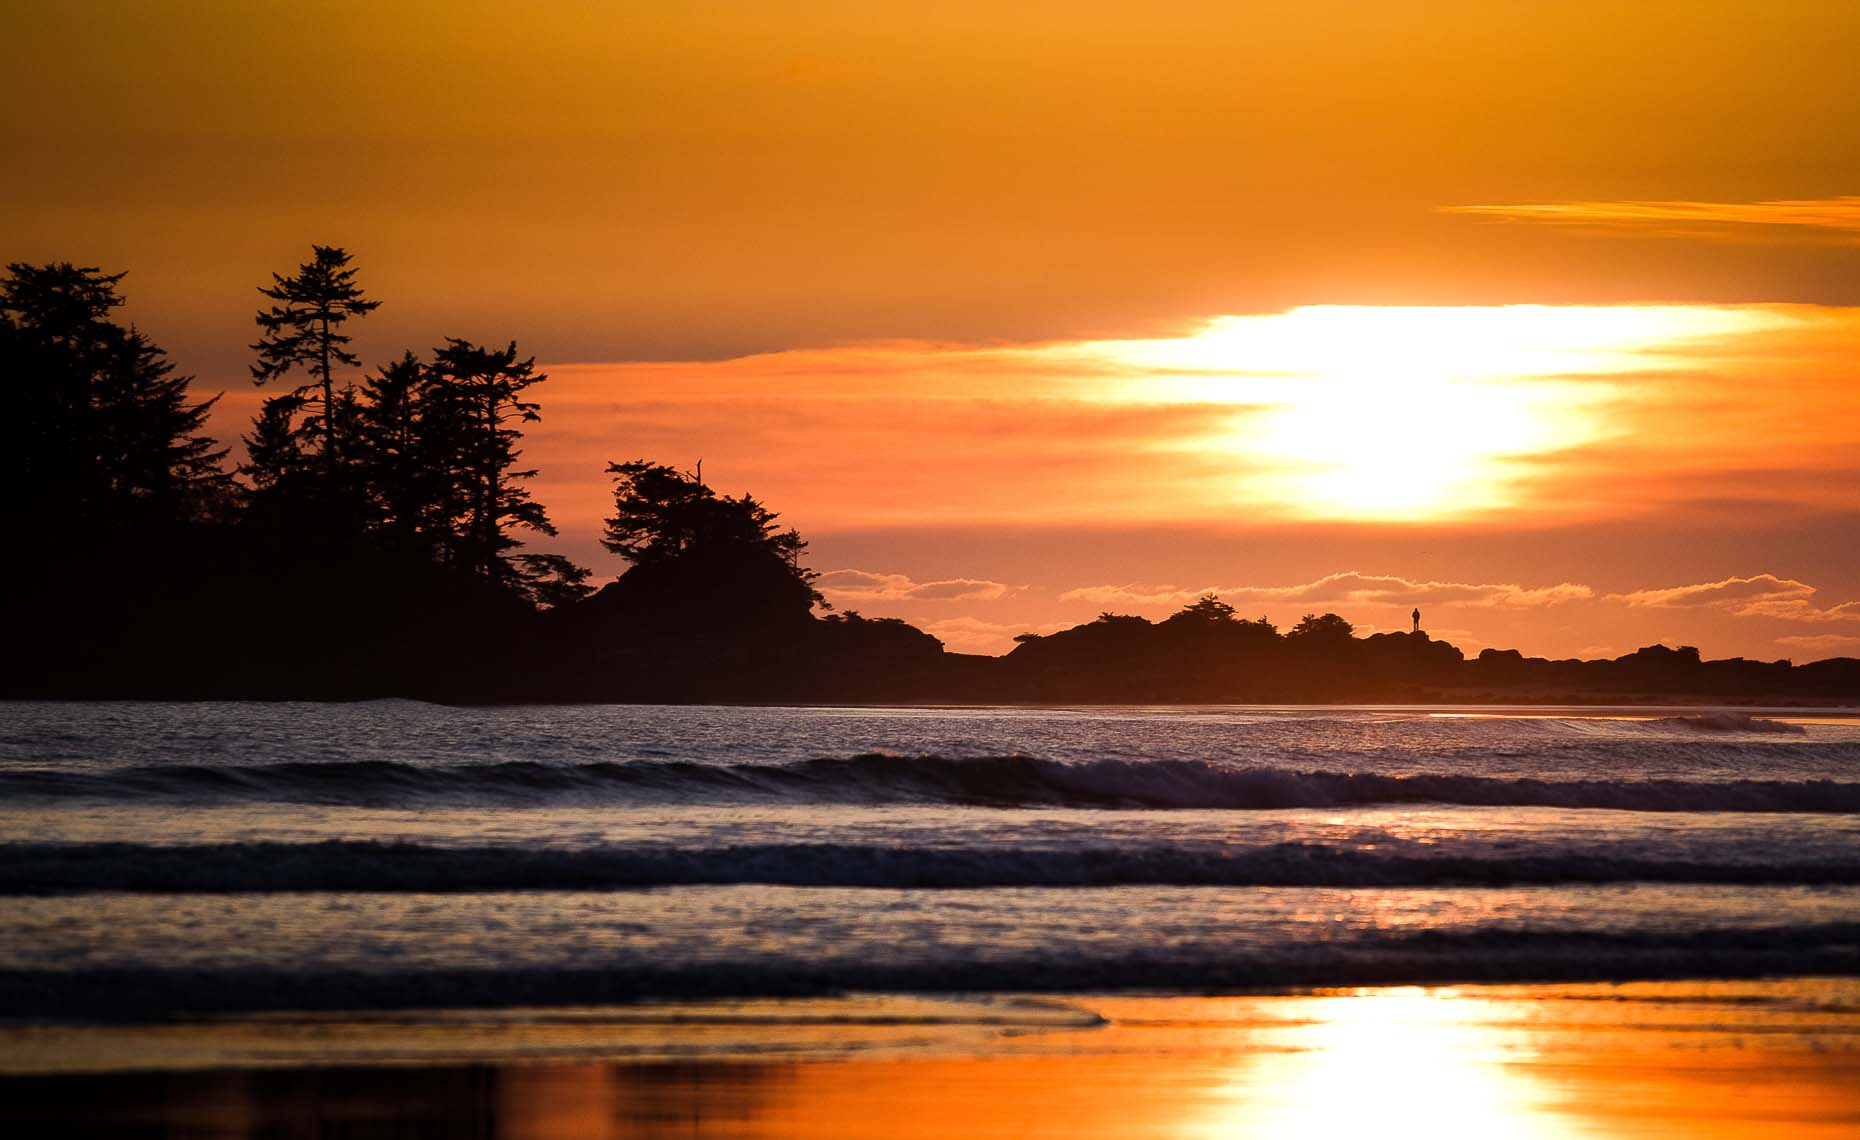 Scenic ocean landscape shot during editorial surf action photography project in tofino BC.